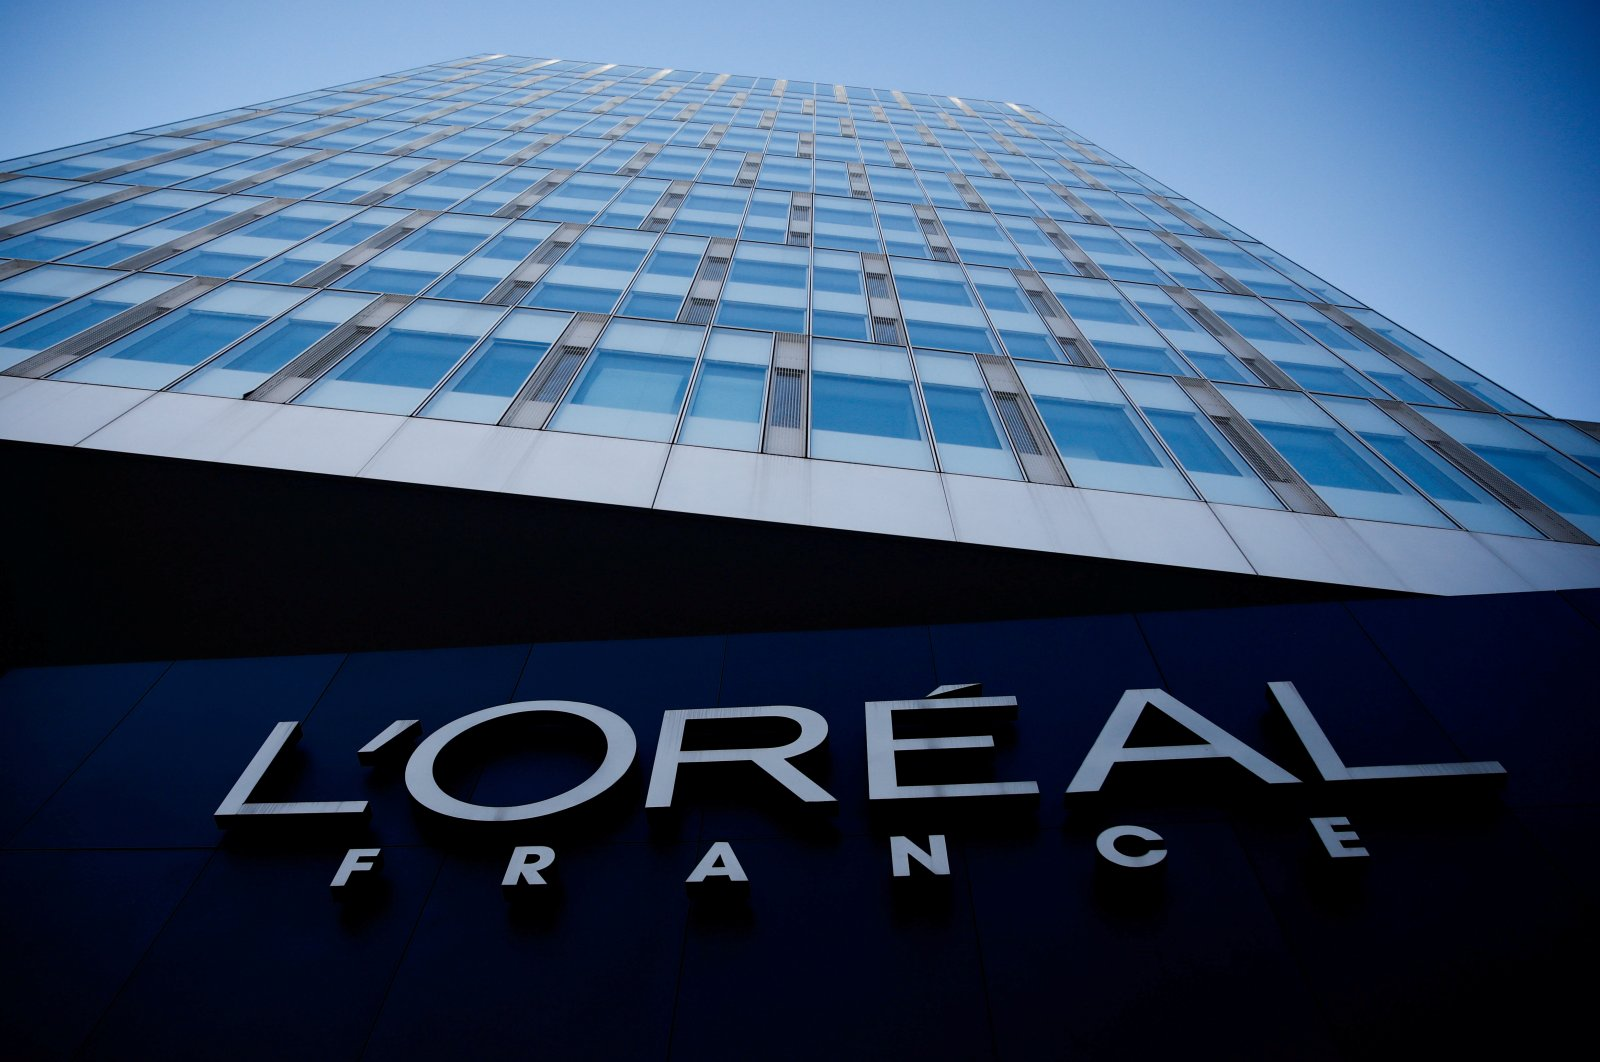 The logo of French cosmetics group L'Oreal in Levallois-Perret, France, Feb. 7, 2020. (Reuters Photo)